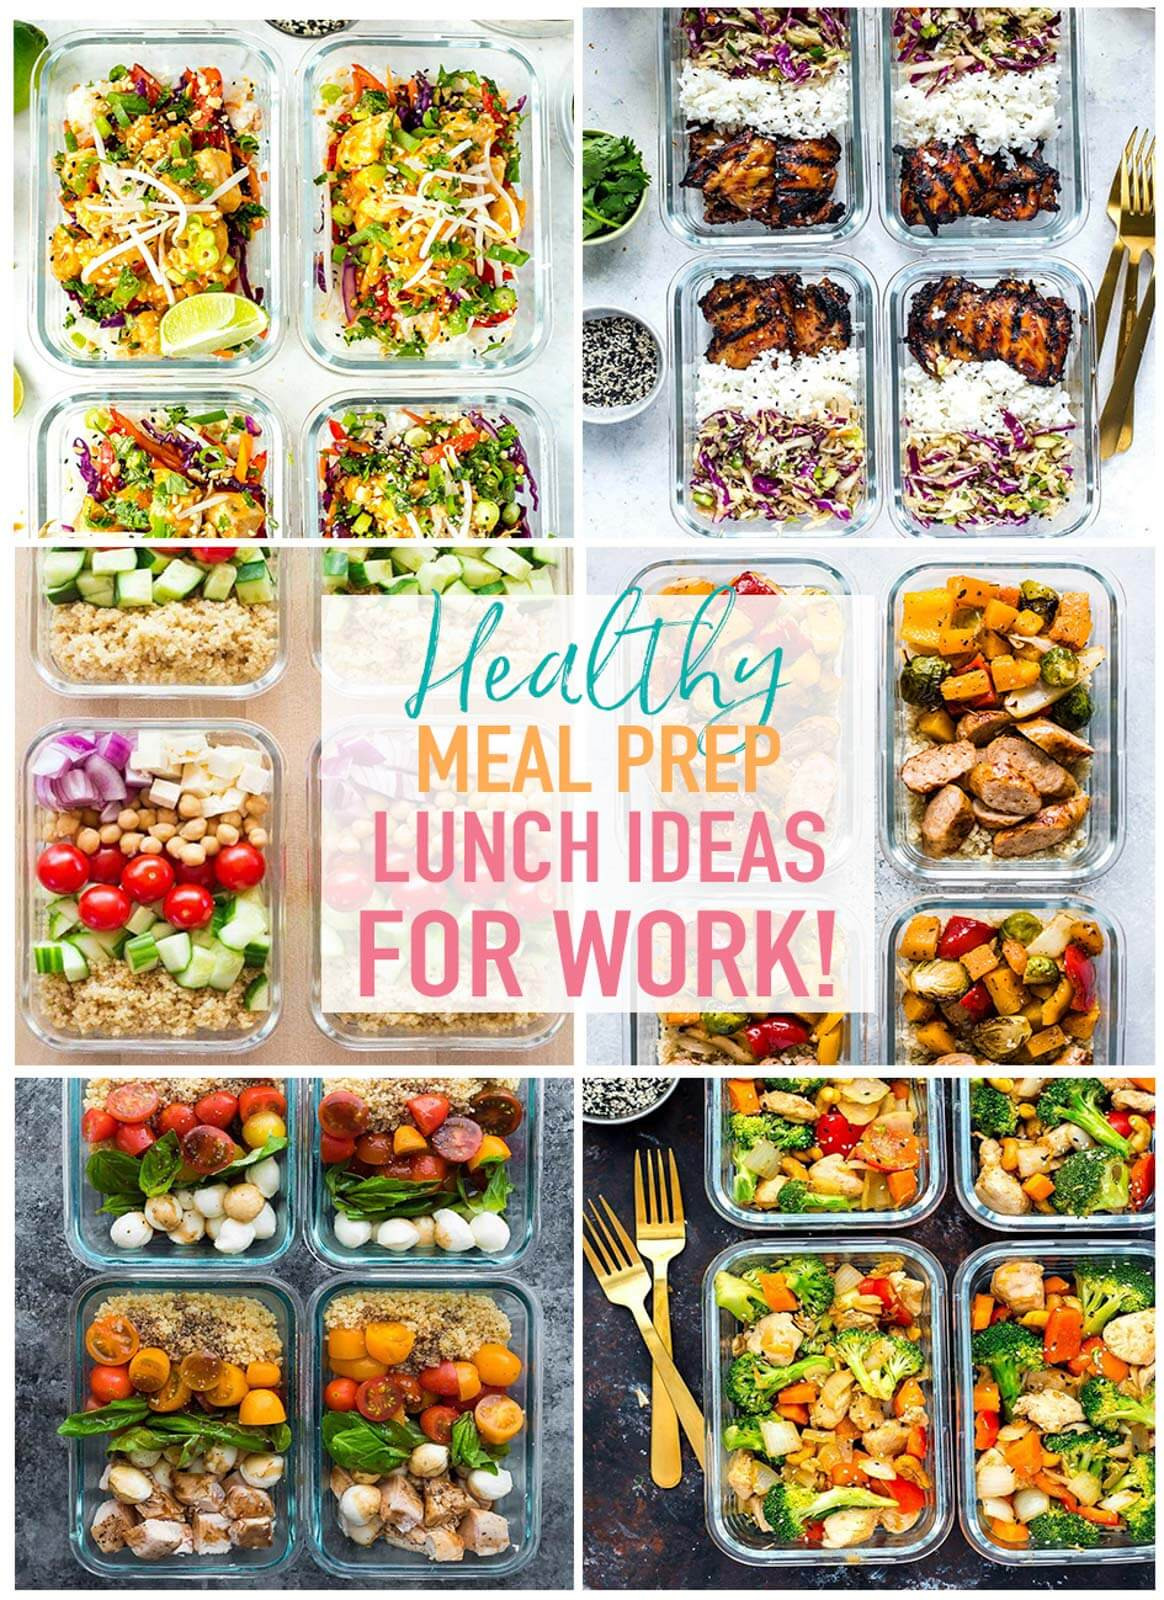 Healthy Lunch Snacks  20 Easy Healthy Meal Prep Lunch Ideas for Work The Girl